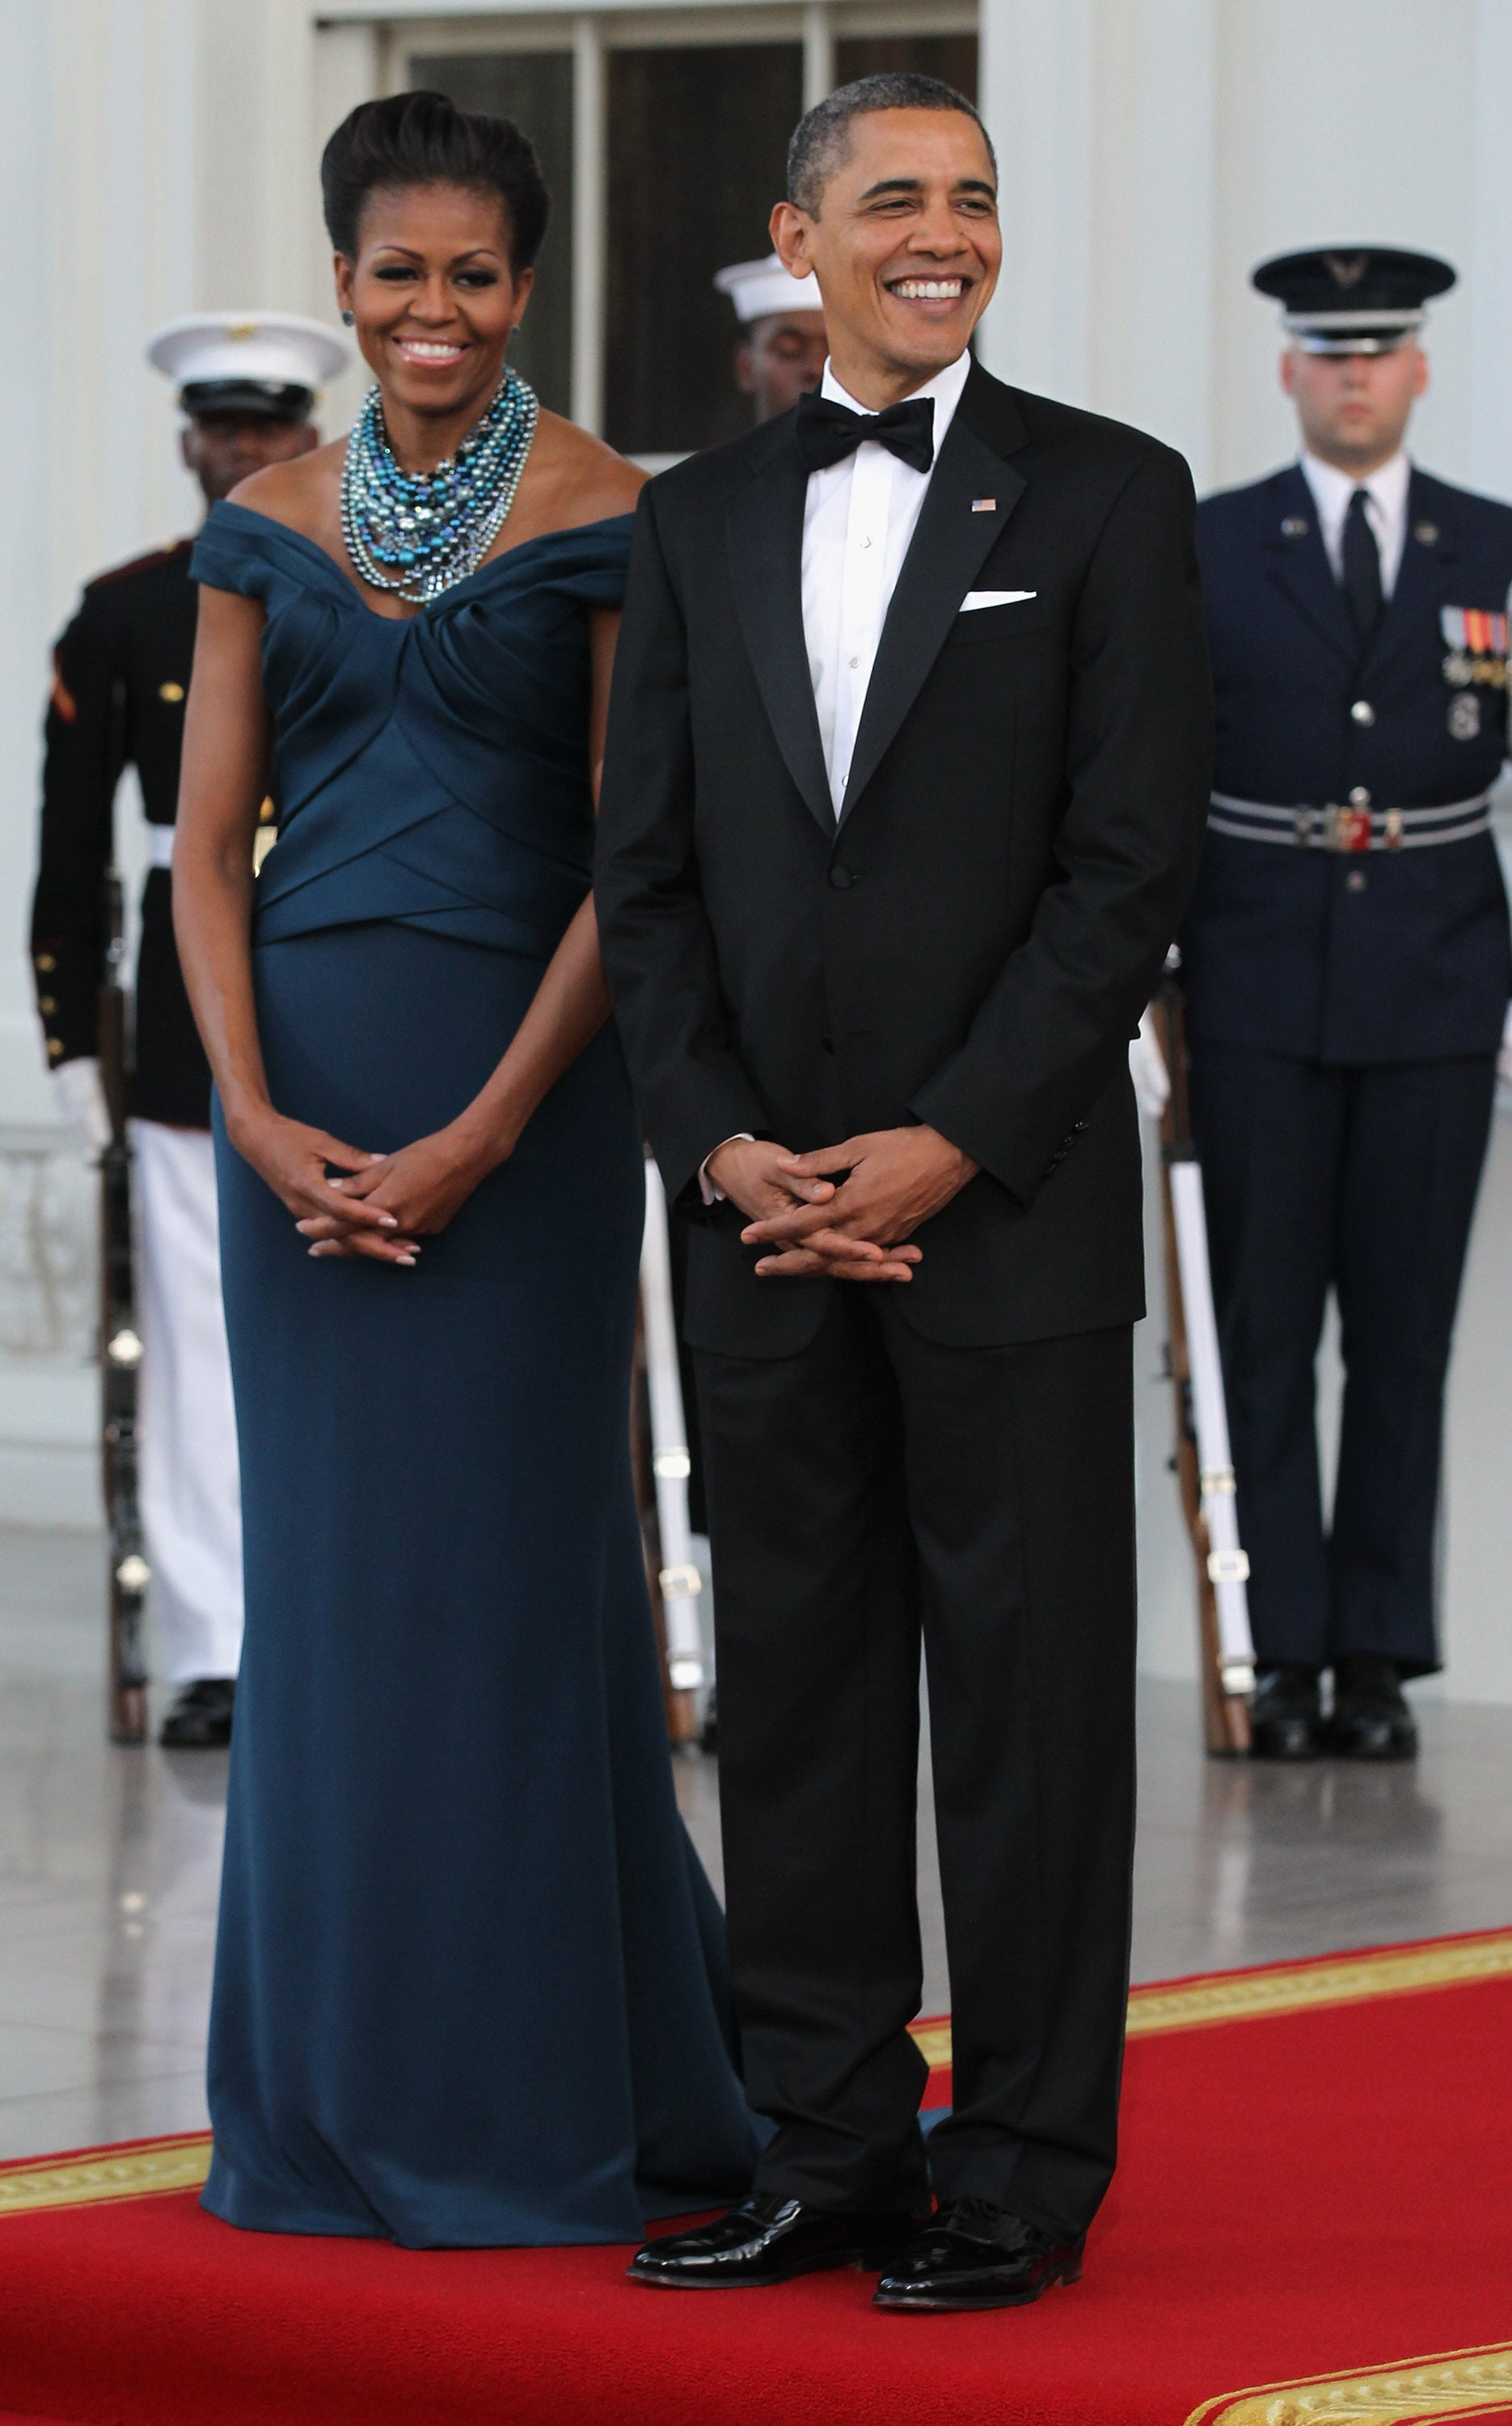 President and Mrs. Obama hosted the visit of UK Prime Minister David Cameron and his wife, Samantha, in 2012. Michelle looked positively glowing in an elegant Marchesa off-the-shoulder gown, accessorized with strands of Tom Binns pearls.